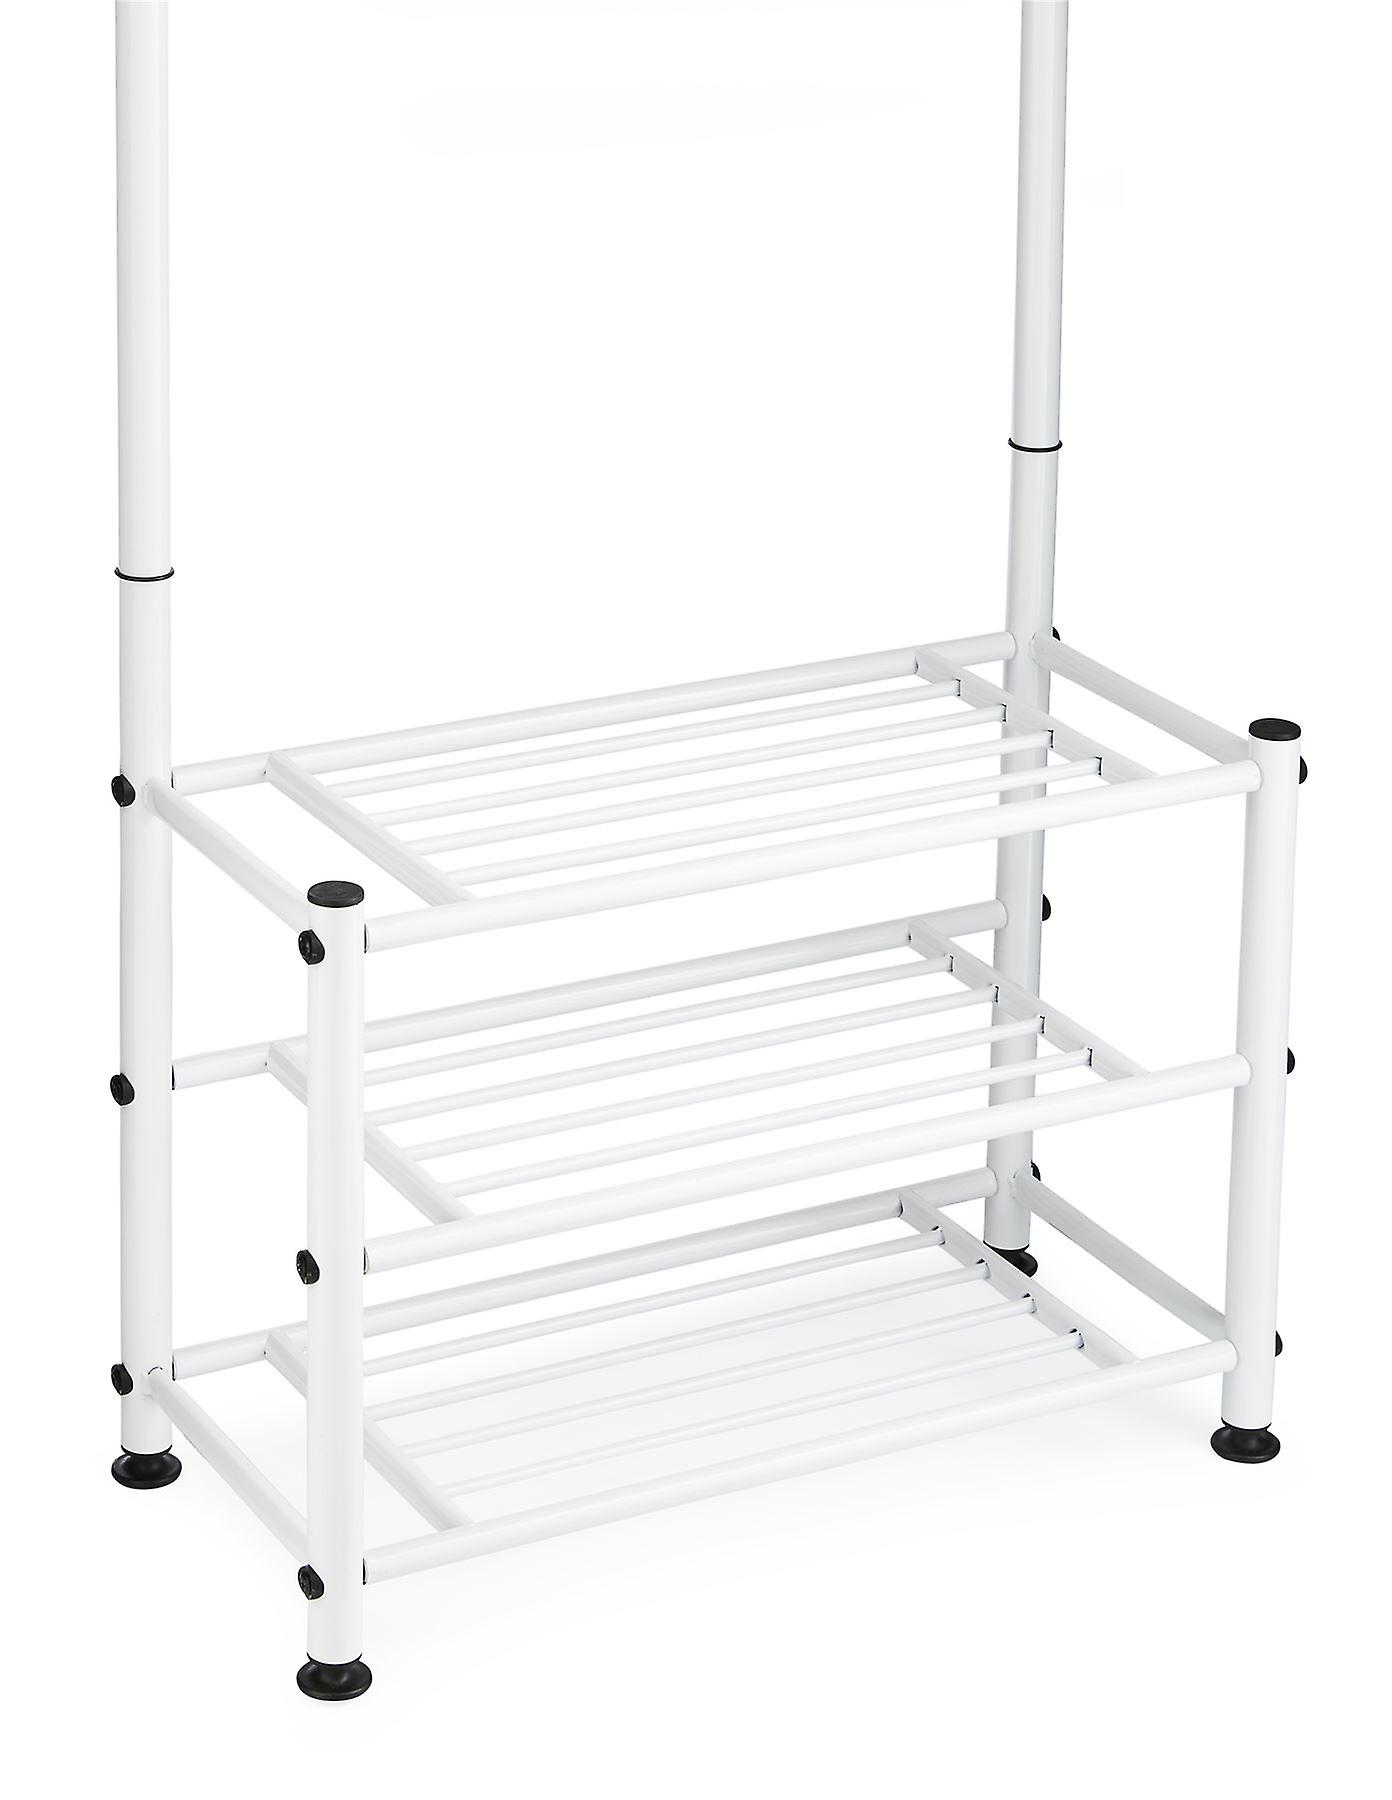 Multi Purpose Stand 18 Hooks For Clothes Shoes Hats Bags - White